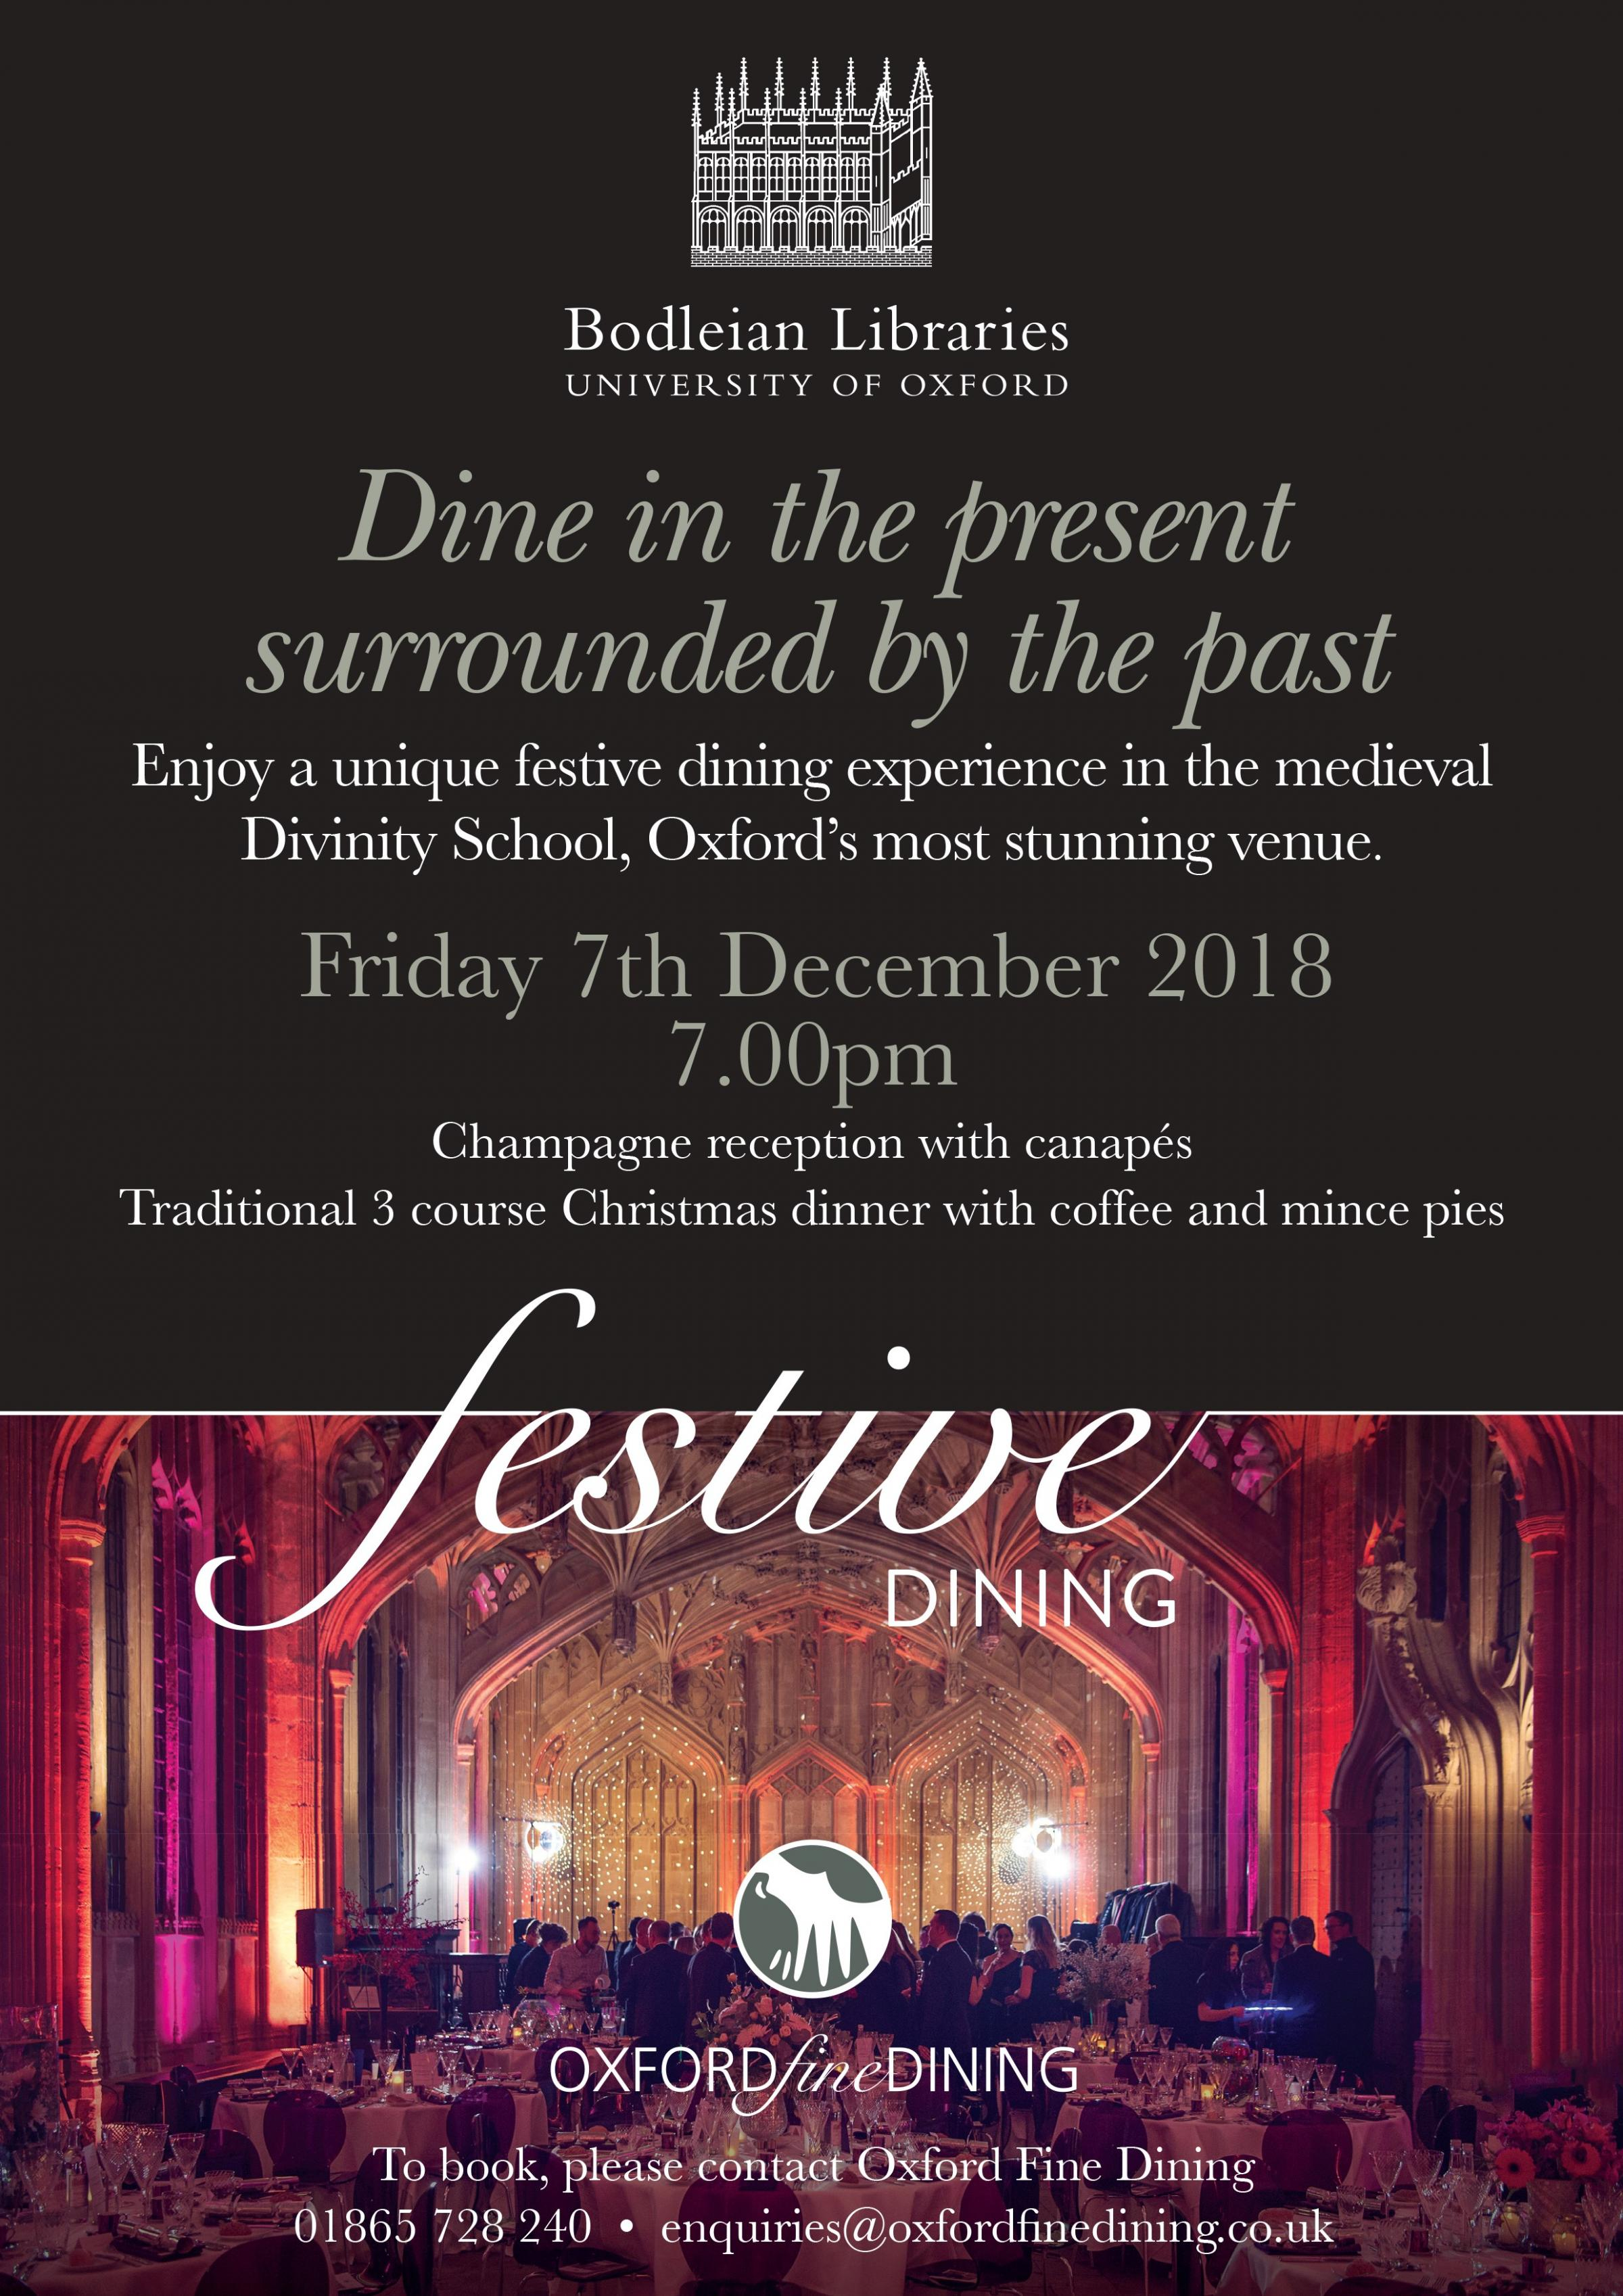 Festive Dining Experience at the Bodleian Libraries